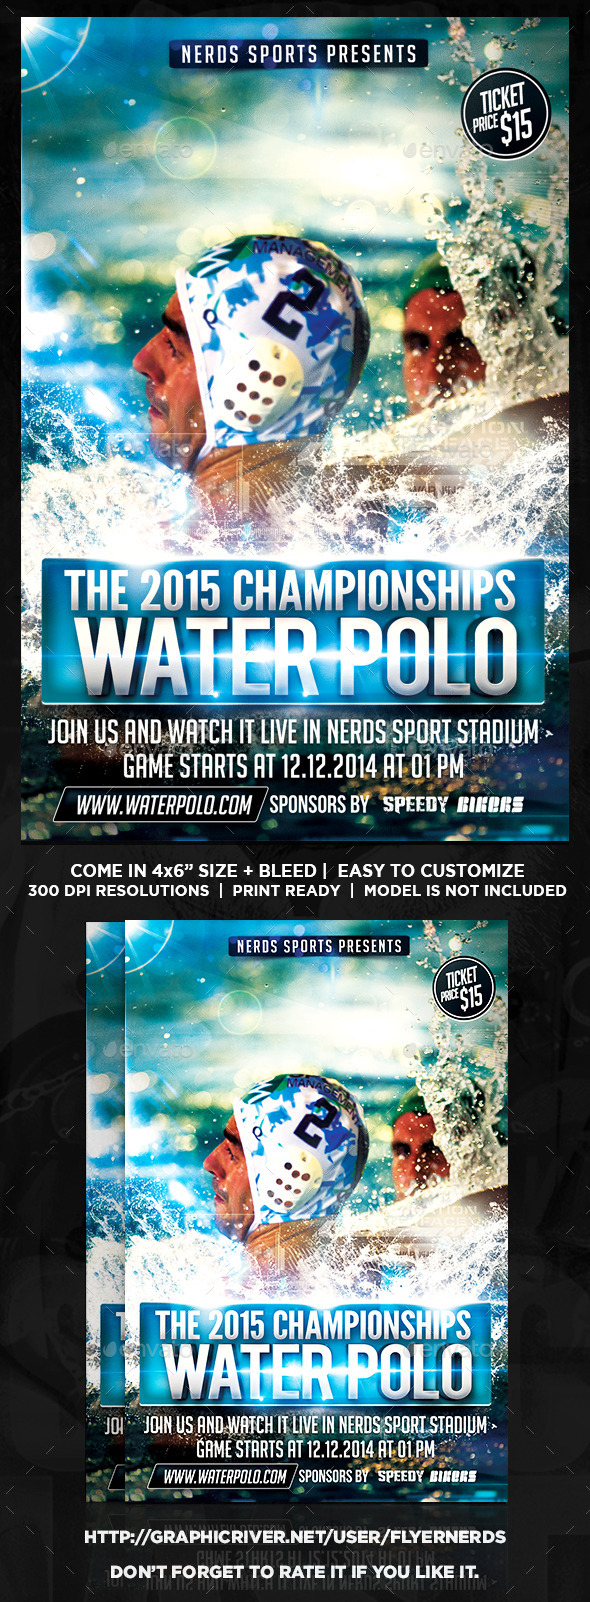 GraphicRiver Water Polo Championships Sports Flyer 9842902